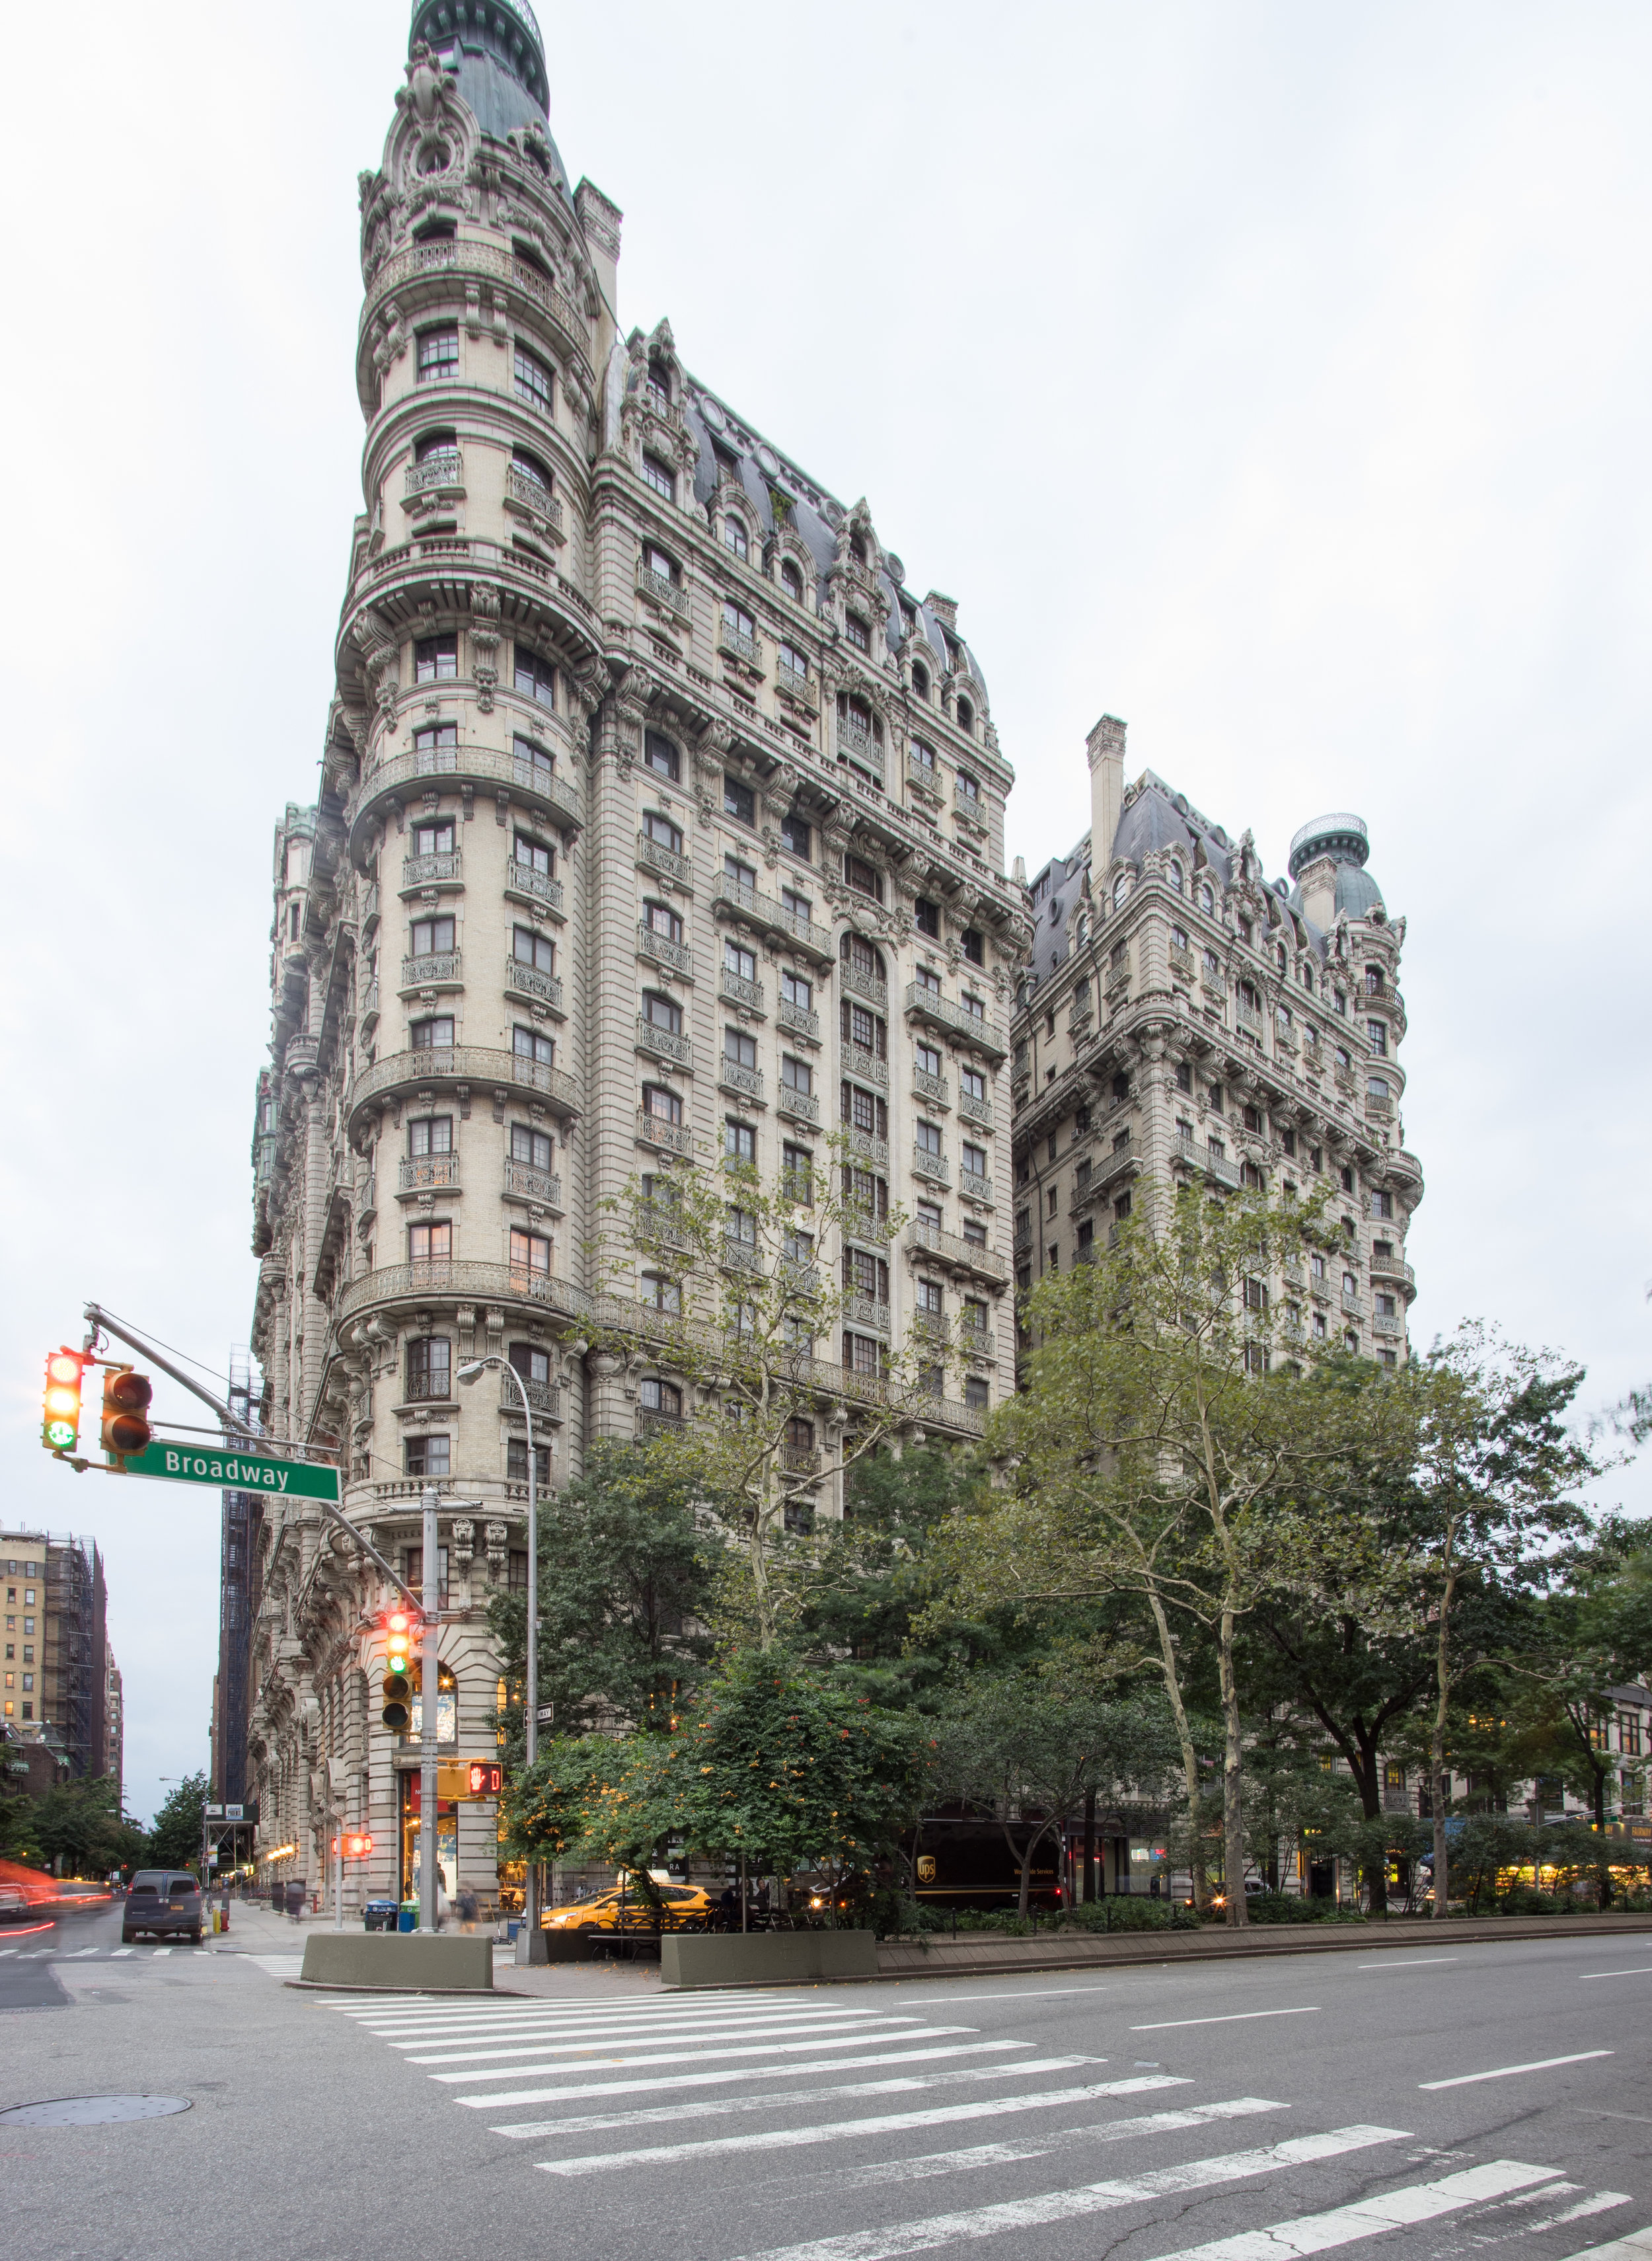 The Ansonia, an Upper West Side landmark, is the reason I work in Architecture. It was my admiration of this structure that made me realize how impactful a building could be, and how our lives are affected by design, often in such unanticipated ways.